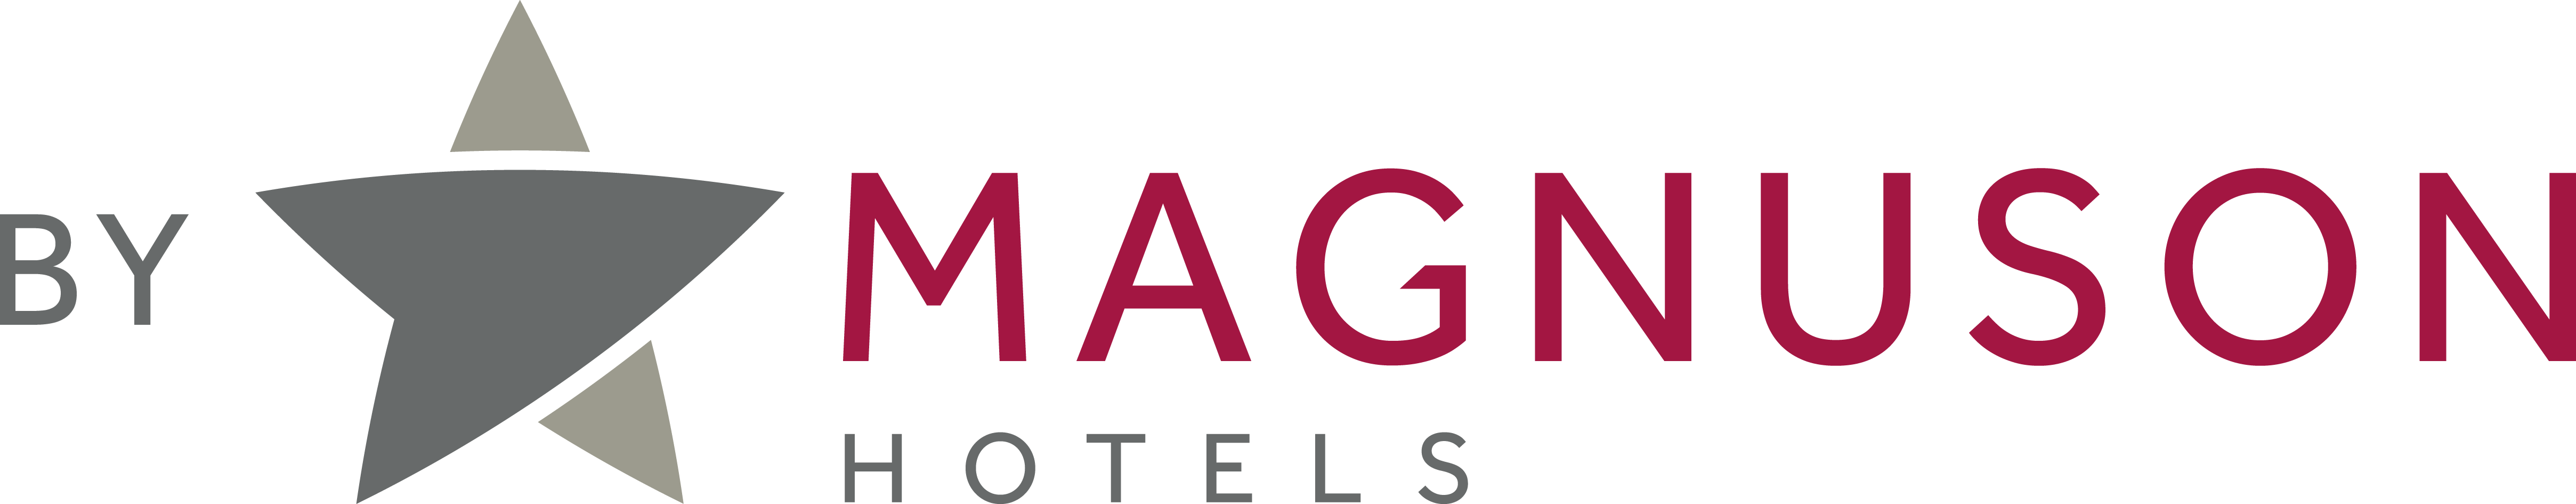 https://www.magnusonhotels.com/brand/magnuson/soft-brand-by-magnuson-worldwide/ logo